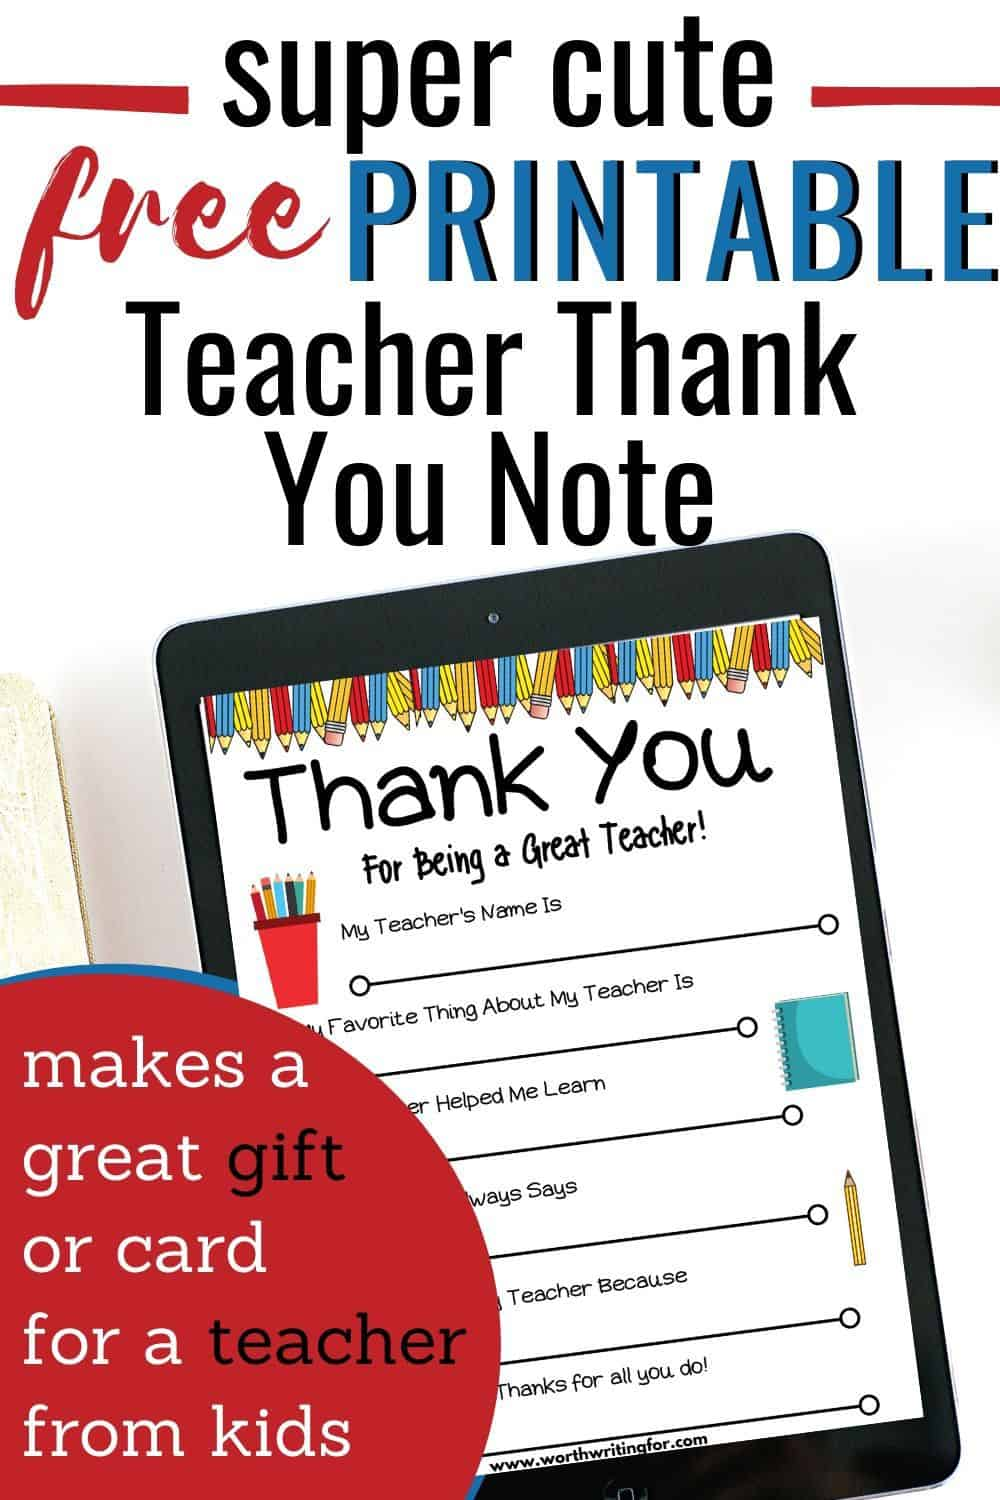 Free Printable Teacher Thank You Note Perfect For Teacher Appreciation Teacher Thank You Notes Teacher Thank You Teacher Printable